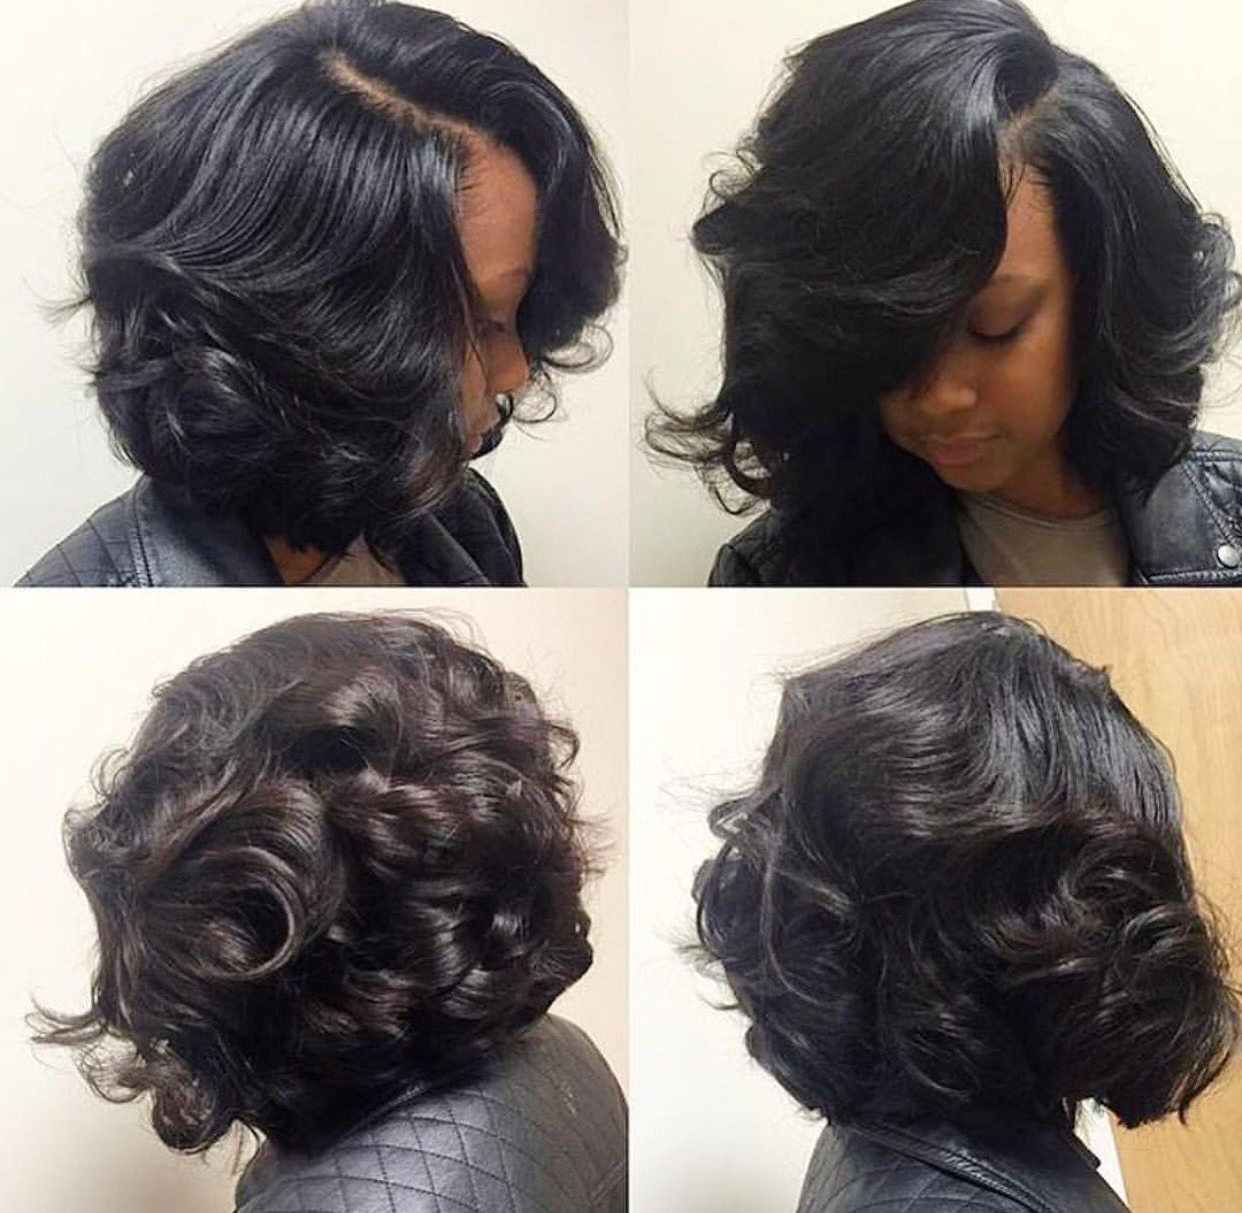 Silk Press & Curl | Hair Inspiration In 2018 | Hair Styles, Hair Intended For Bouncy Curly Black Bob Hairstyles (View 23 of 25)